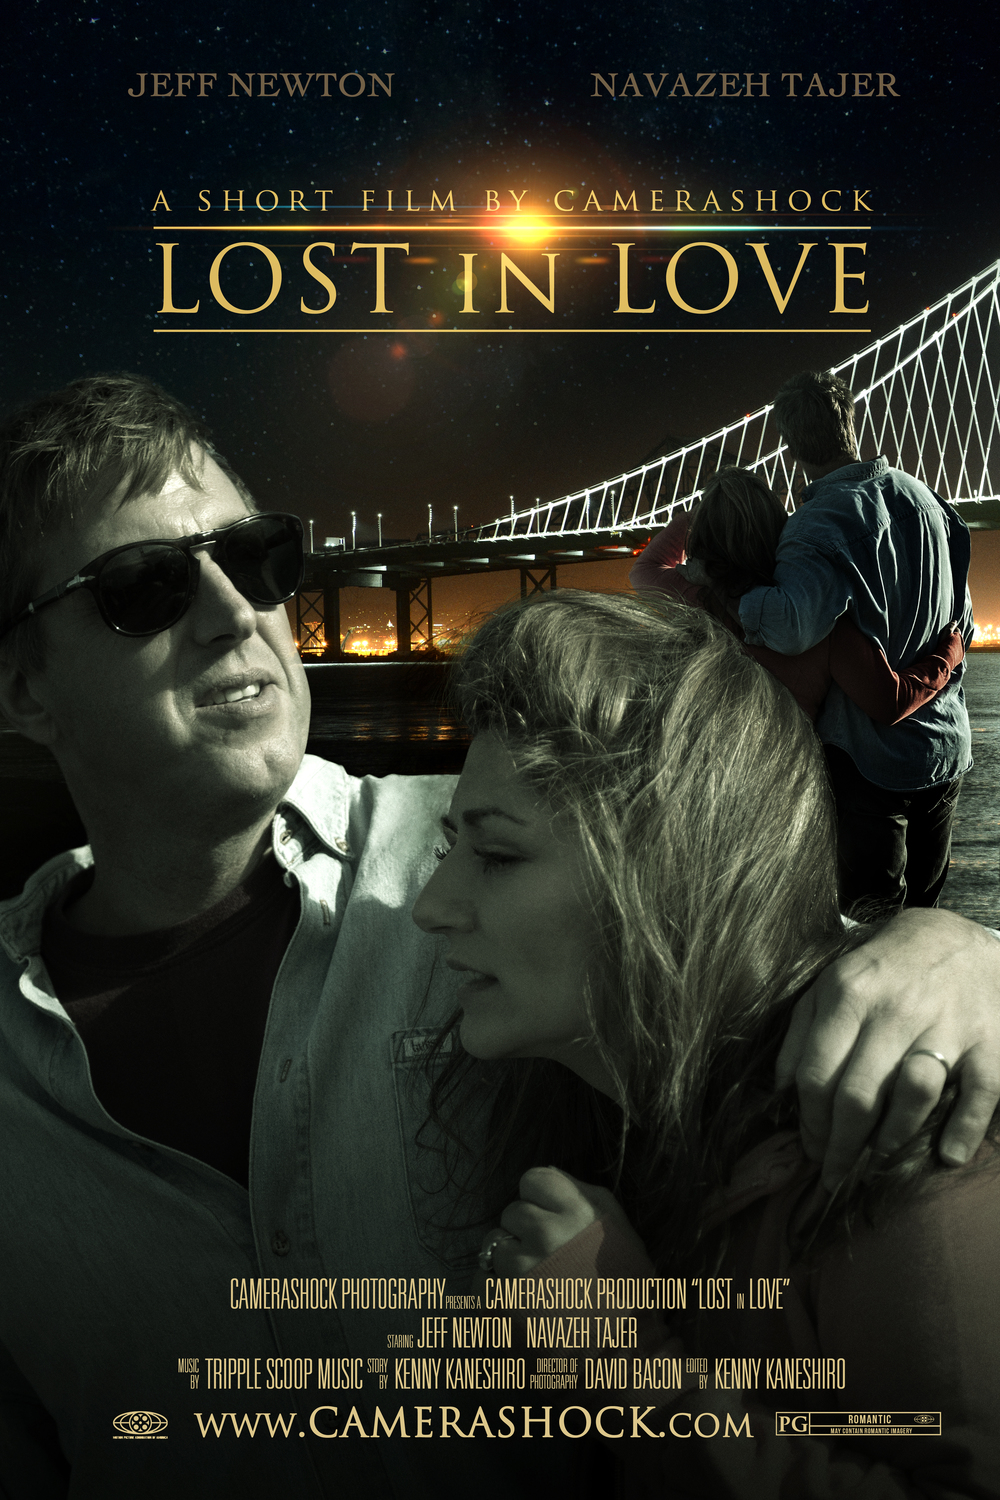 Lost-In-Love-MOVIE-POSTER.jpg